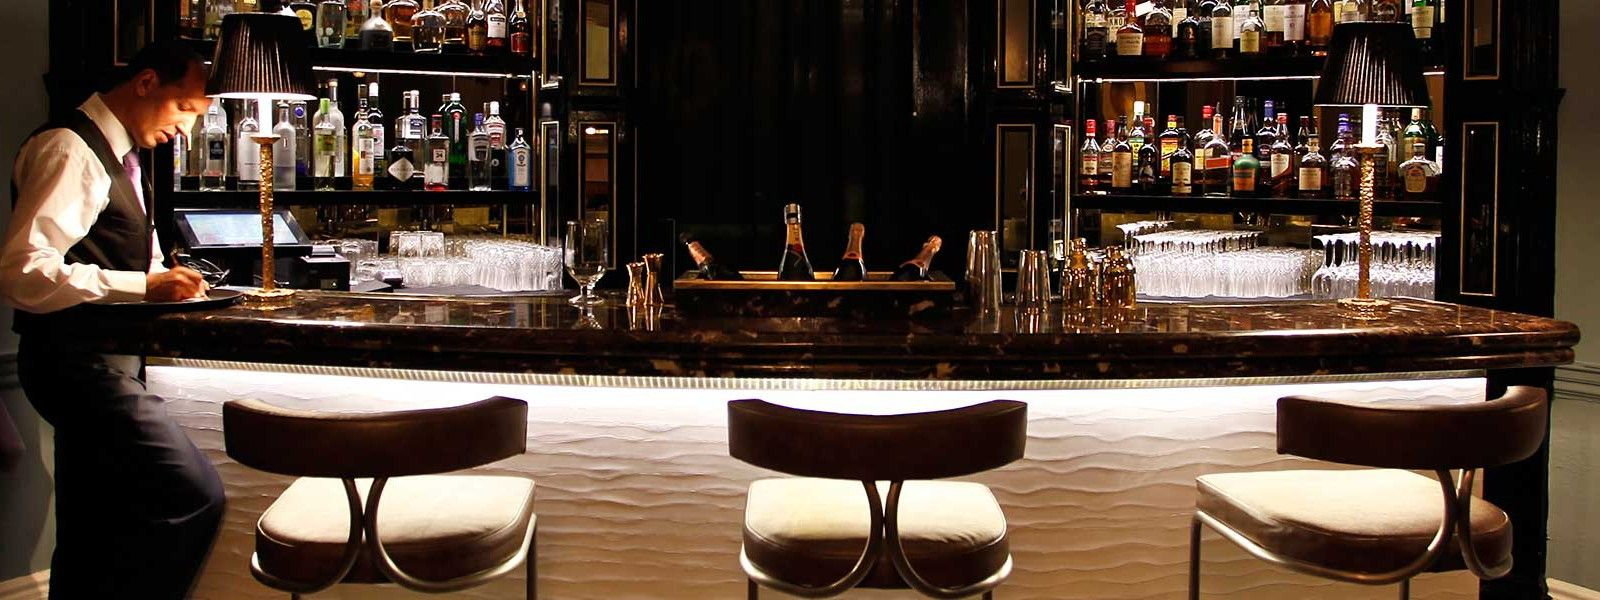 The Restaurant in House 19 is the perfect place to enjoy